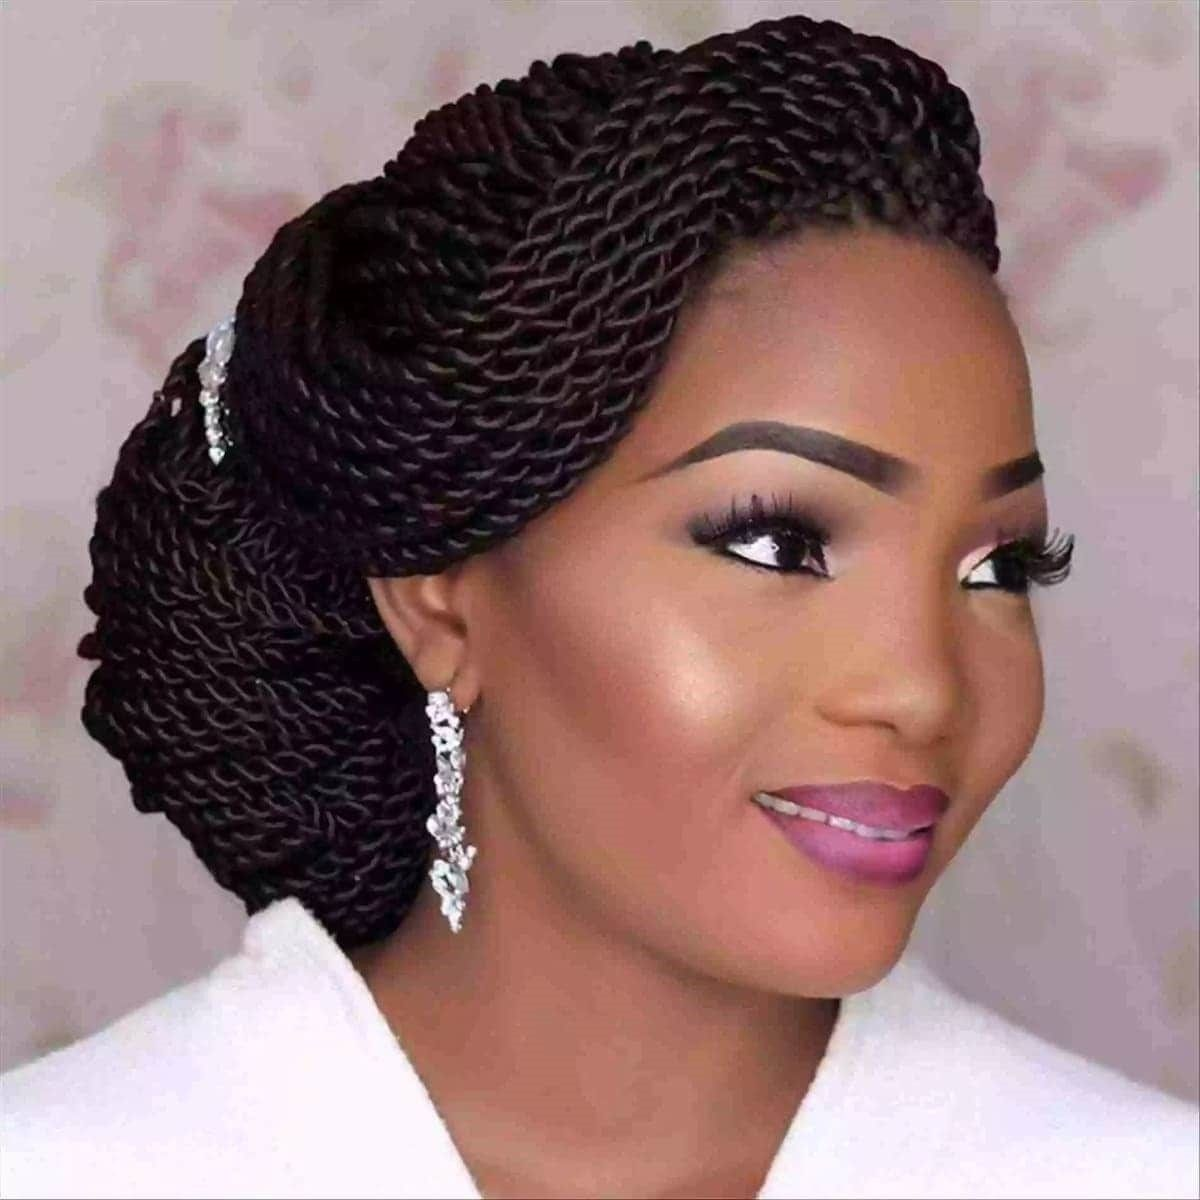 Ghanaian Wedding Hairstyles 2018 Latest Bridal Hairstyles In Ghana Today Newspaper Natural Hair Styles Hair Styles Bridal Hairstyles With Braids